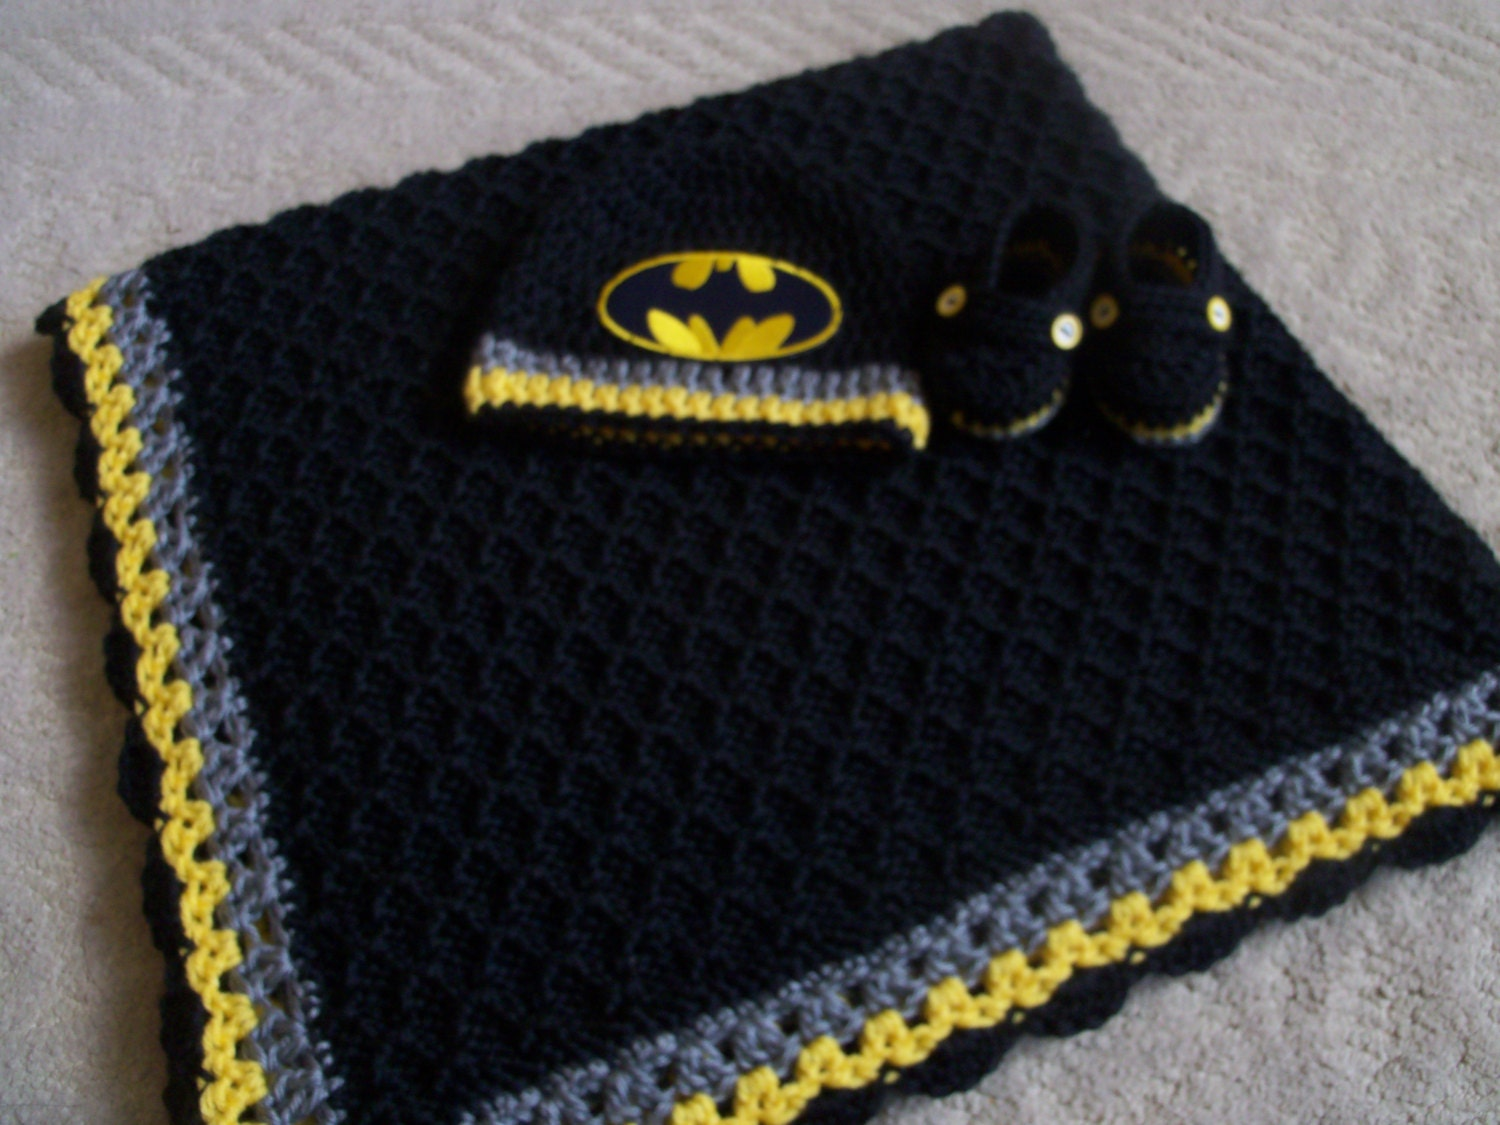 Knitting Pattern For Batman Blanket : Knit/Crochet Batman Personalized Baby Blanket Hat and Booties